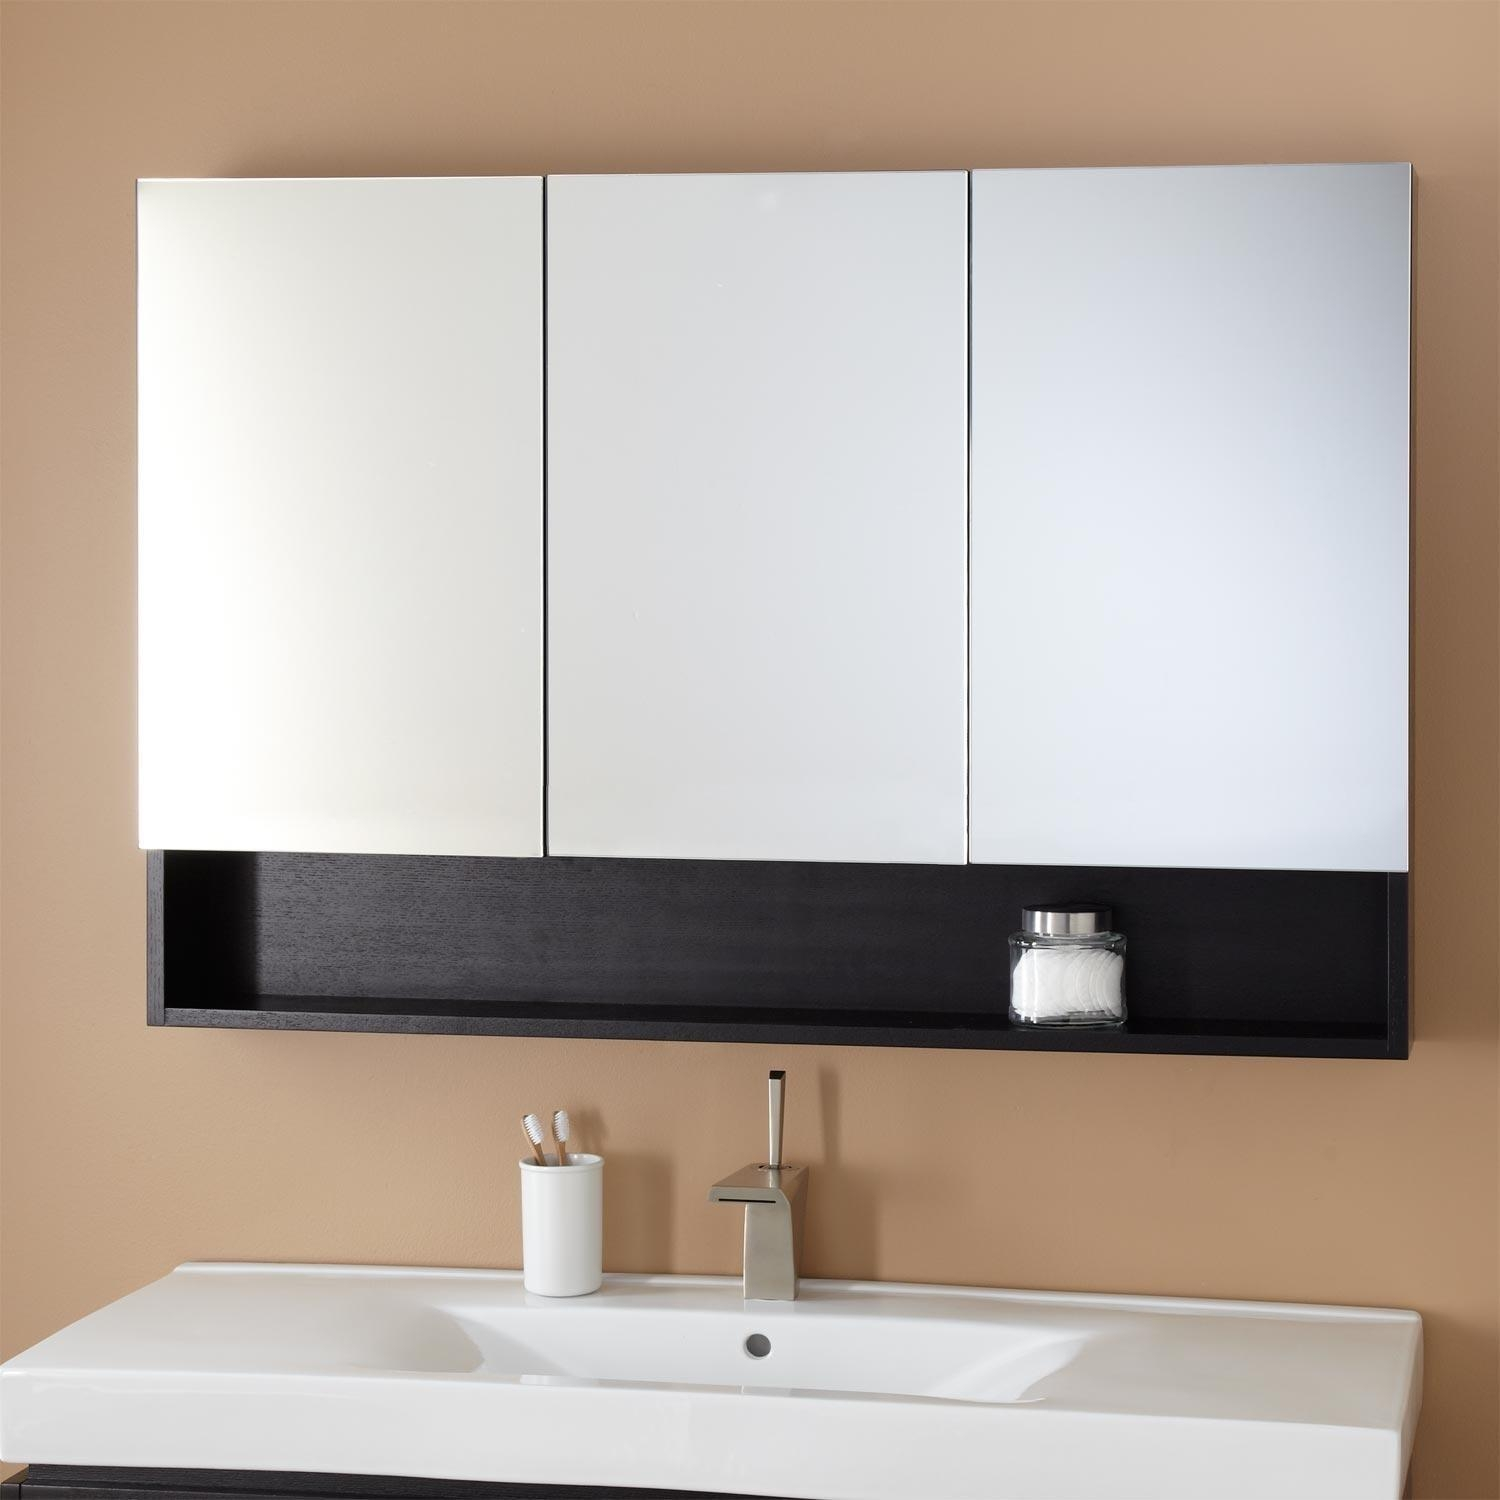 Bathroom Medicine Cabinets | Signature Hardware Within Bathroom Medicine Cabinets And Mirrors (Image 6 of 20)